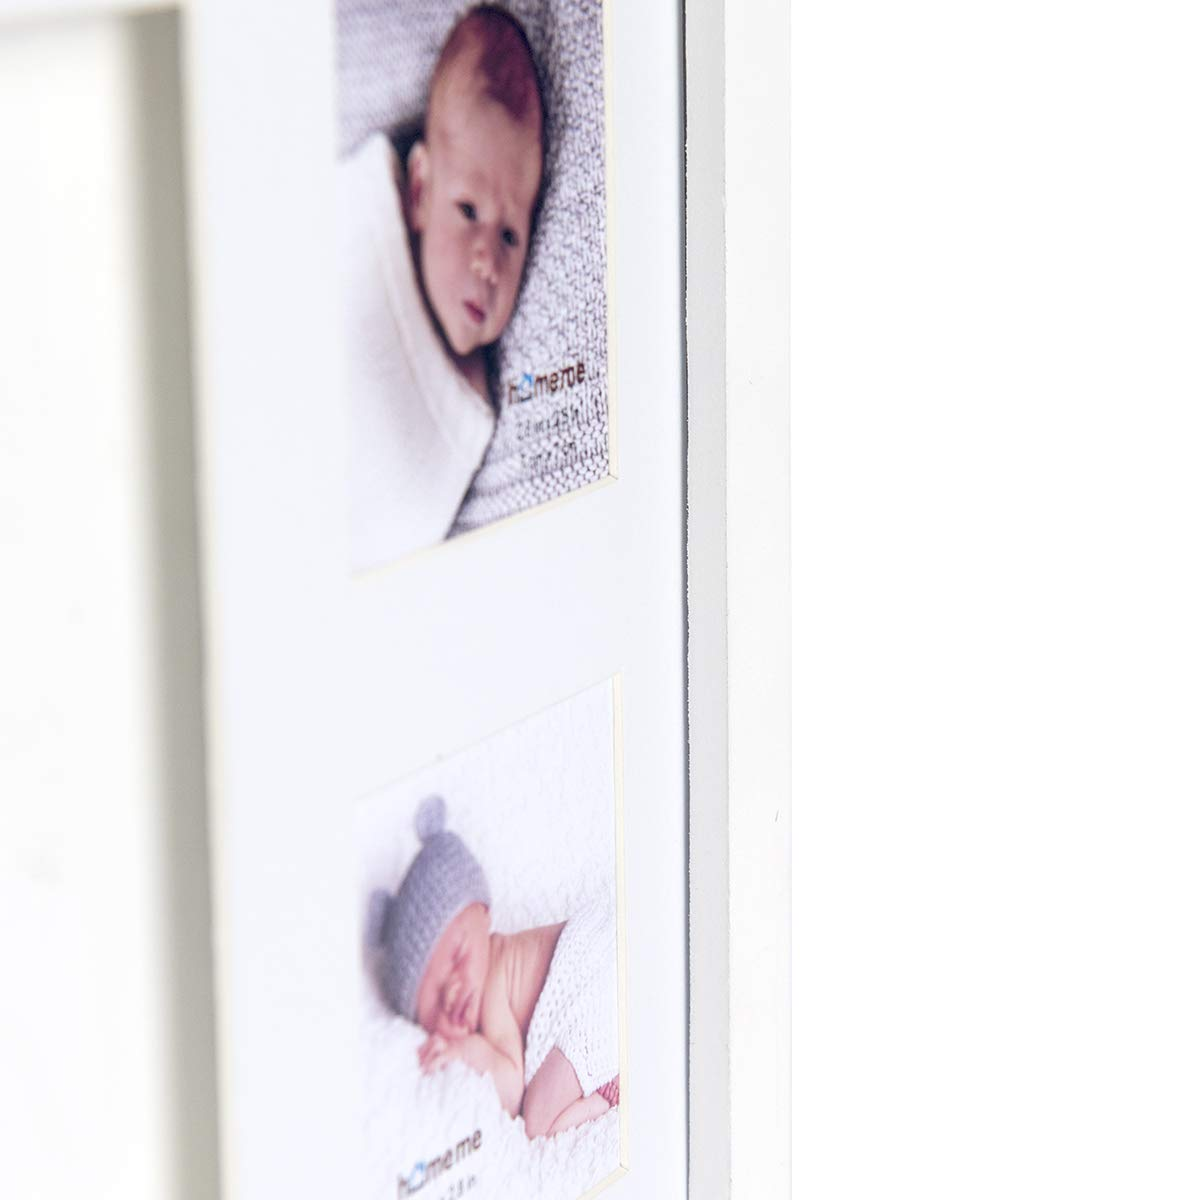 Keepsake Box Decorations for Room Wall Nursery Decor Baby Handprint Kit /& Footprint Photo Frame for Newborn Girls and Boys Baby Photo Album for Shower Registry Personalized Baby Gifts